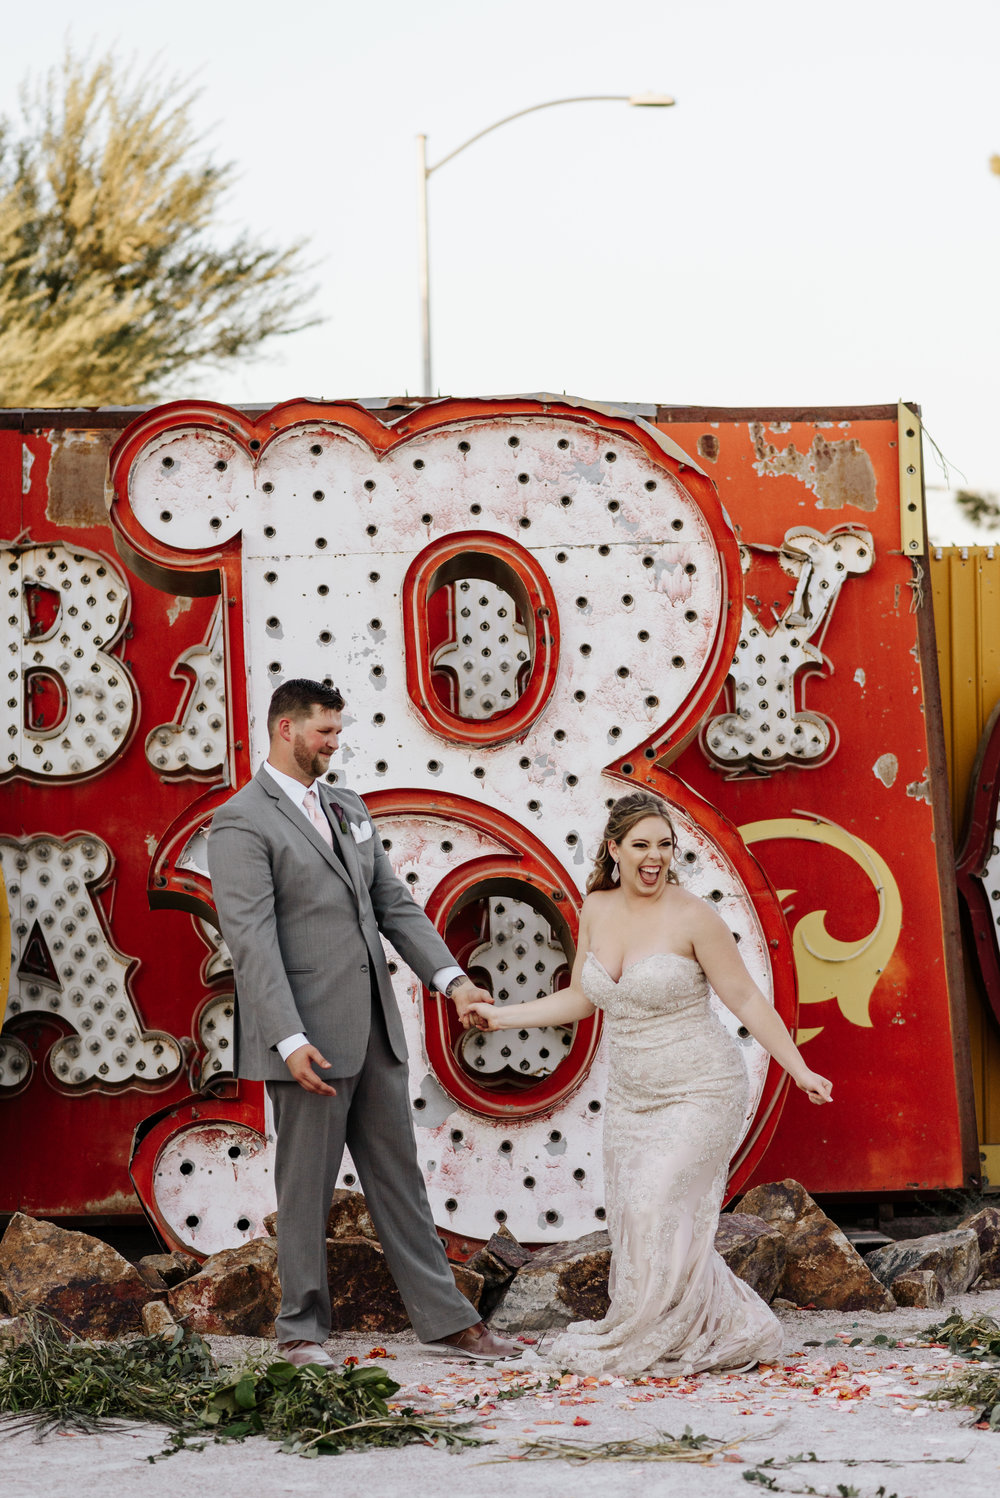 Neon-Museum-Wedding-Las-Vegas-Nevada-Golden-Nugget-Photography-by-V-Ally-and-Dan-6830.jpg